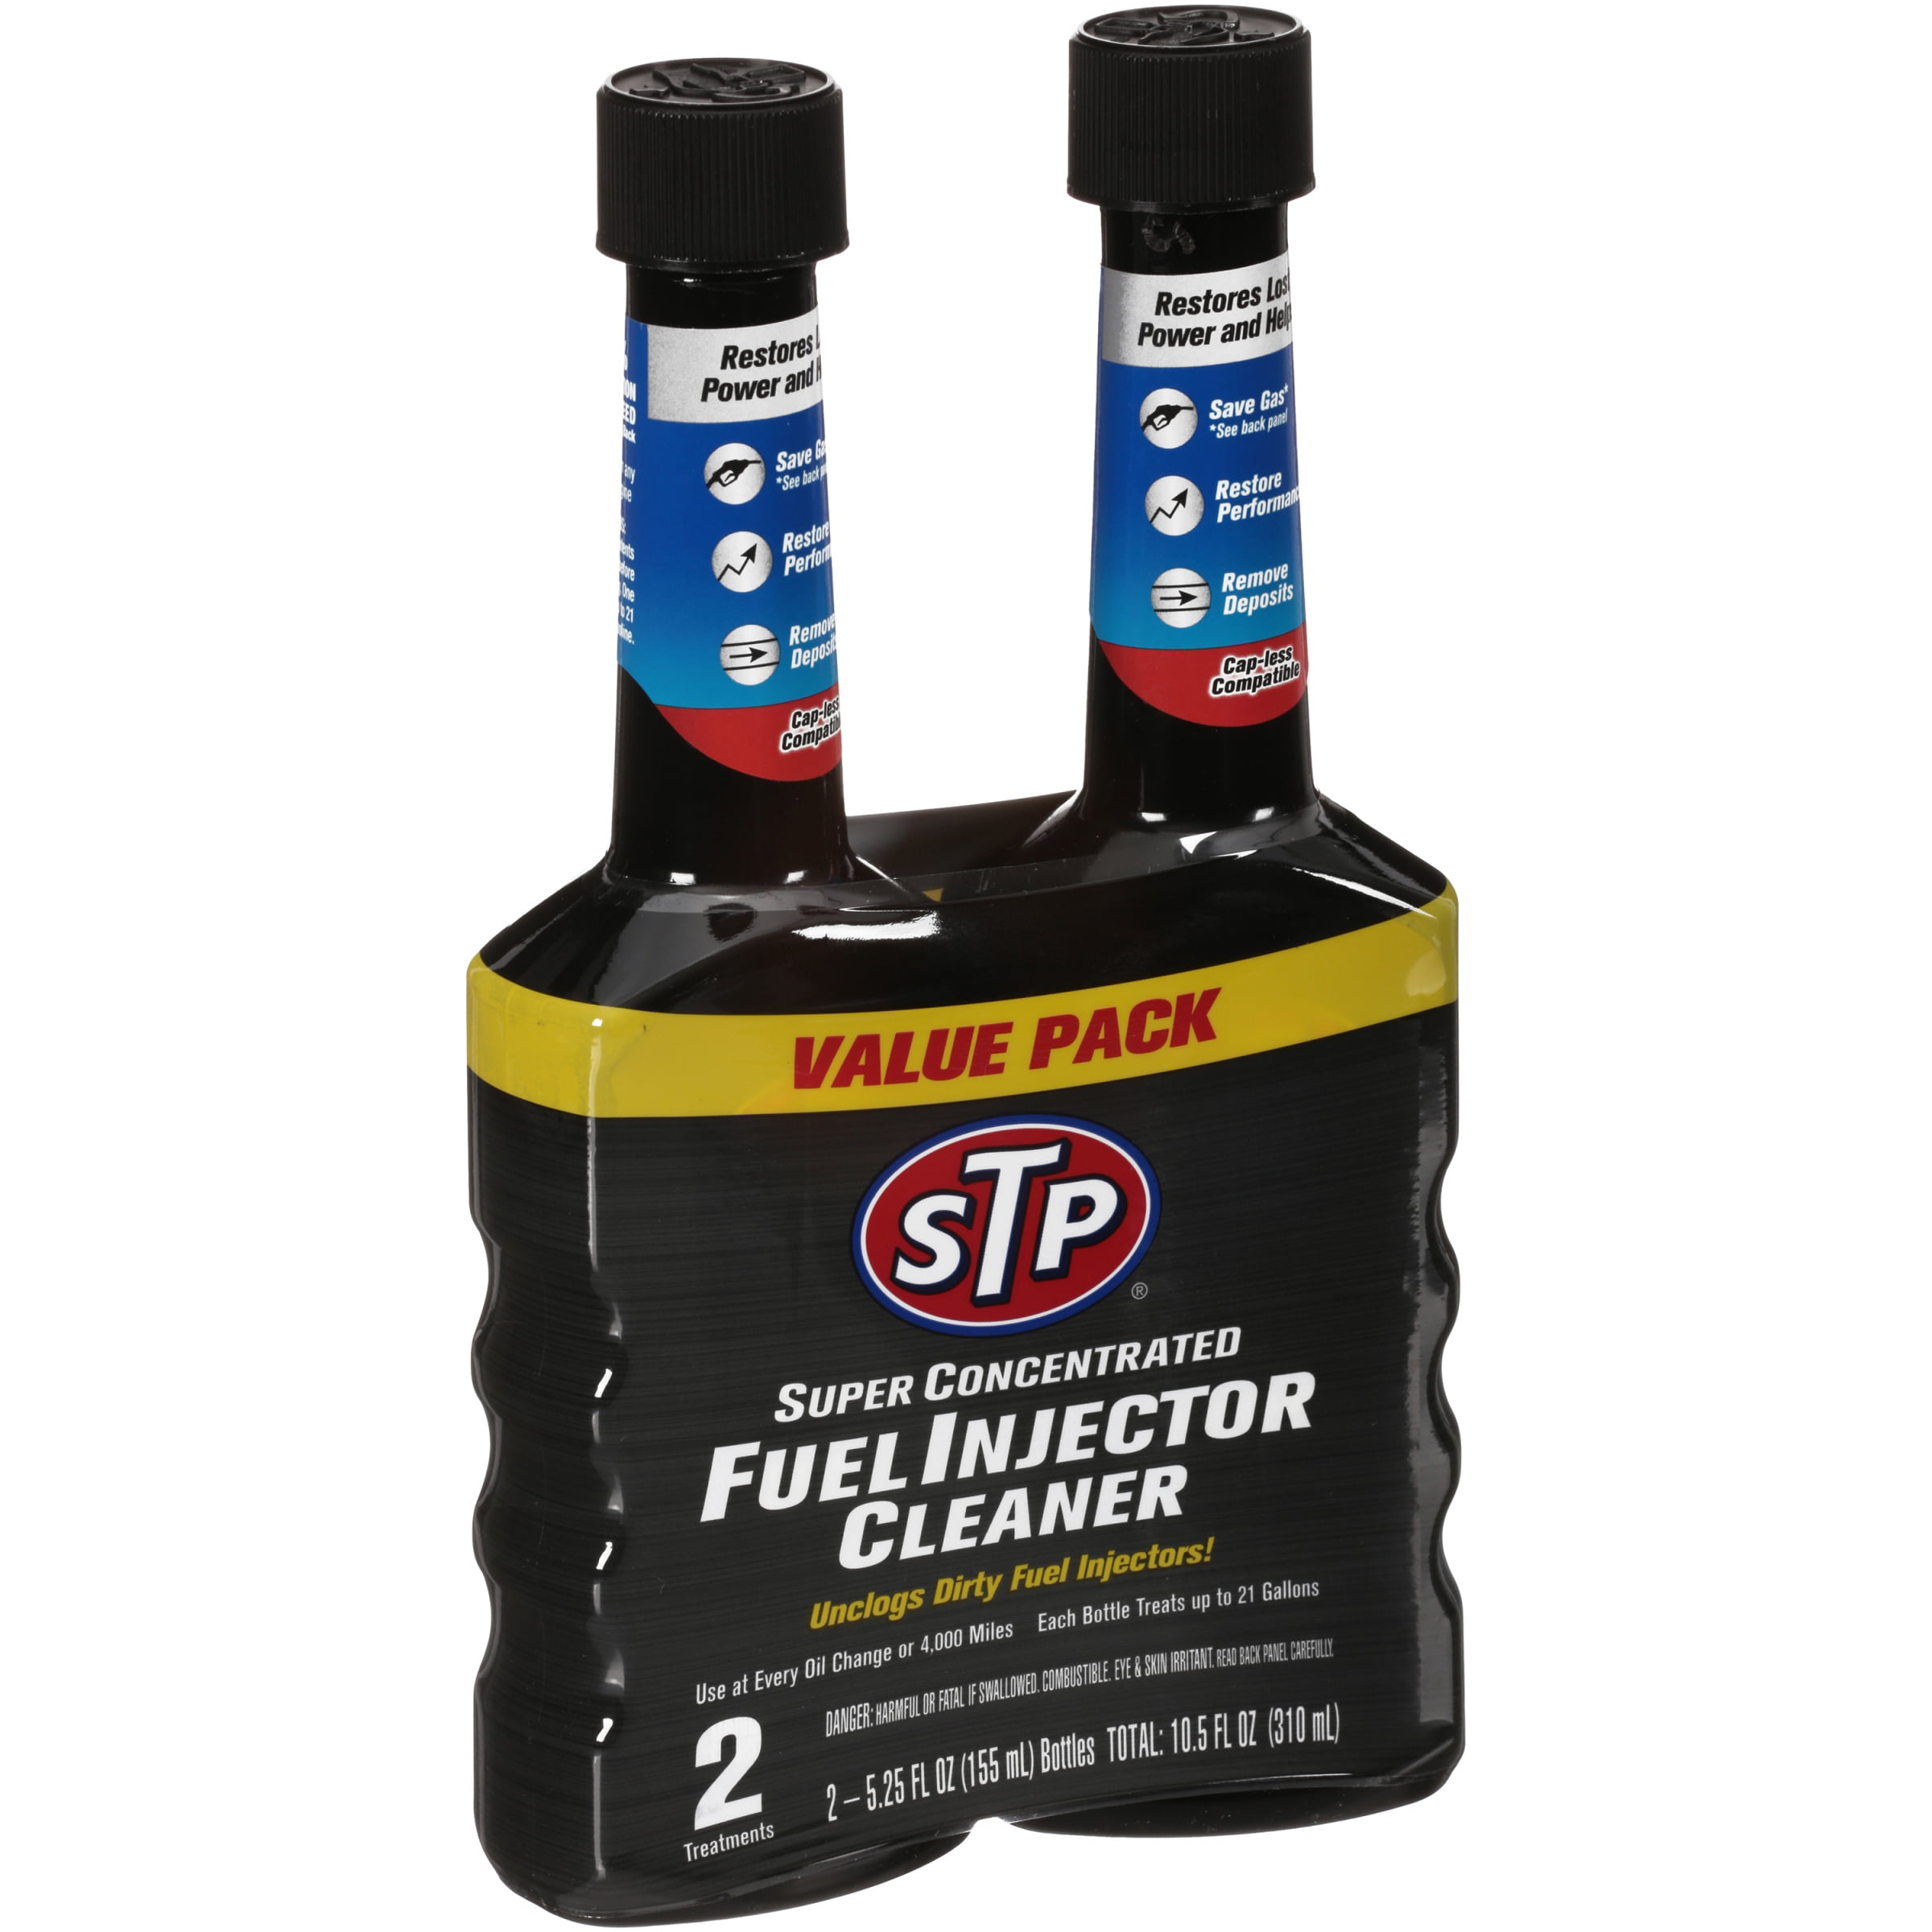 STP® Super Concentrated Fuel Injector Cleaner 2-5 25 fl  oz  Bottles